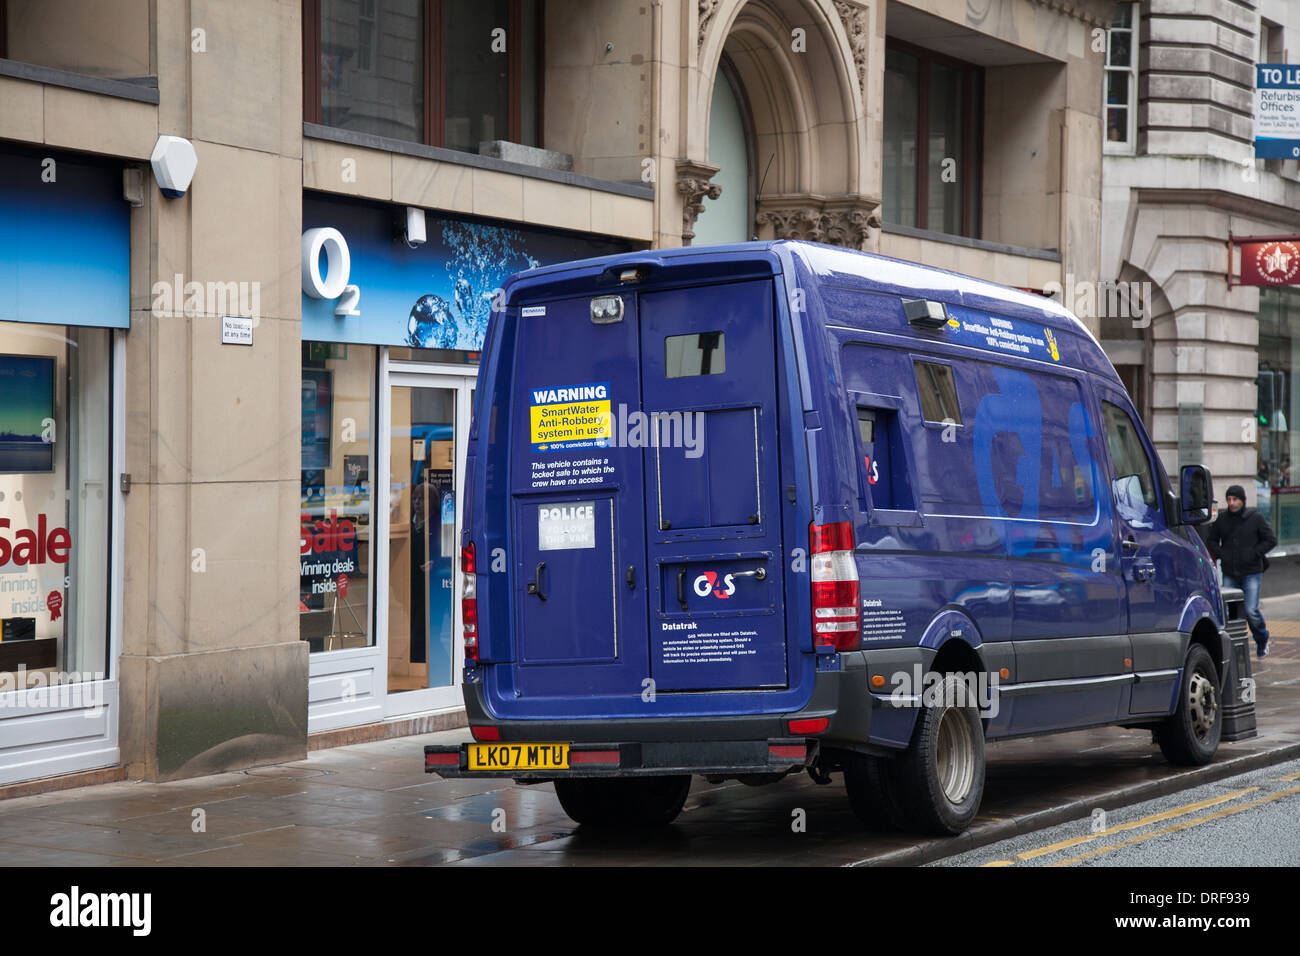 Cross St Manchester _G4S Security 'Cash in Transit' van outside O2 Manchester City Centre, UK. Europe EU - Stock Image